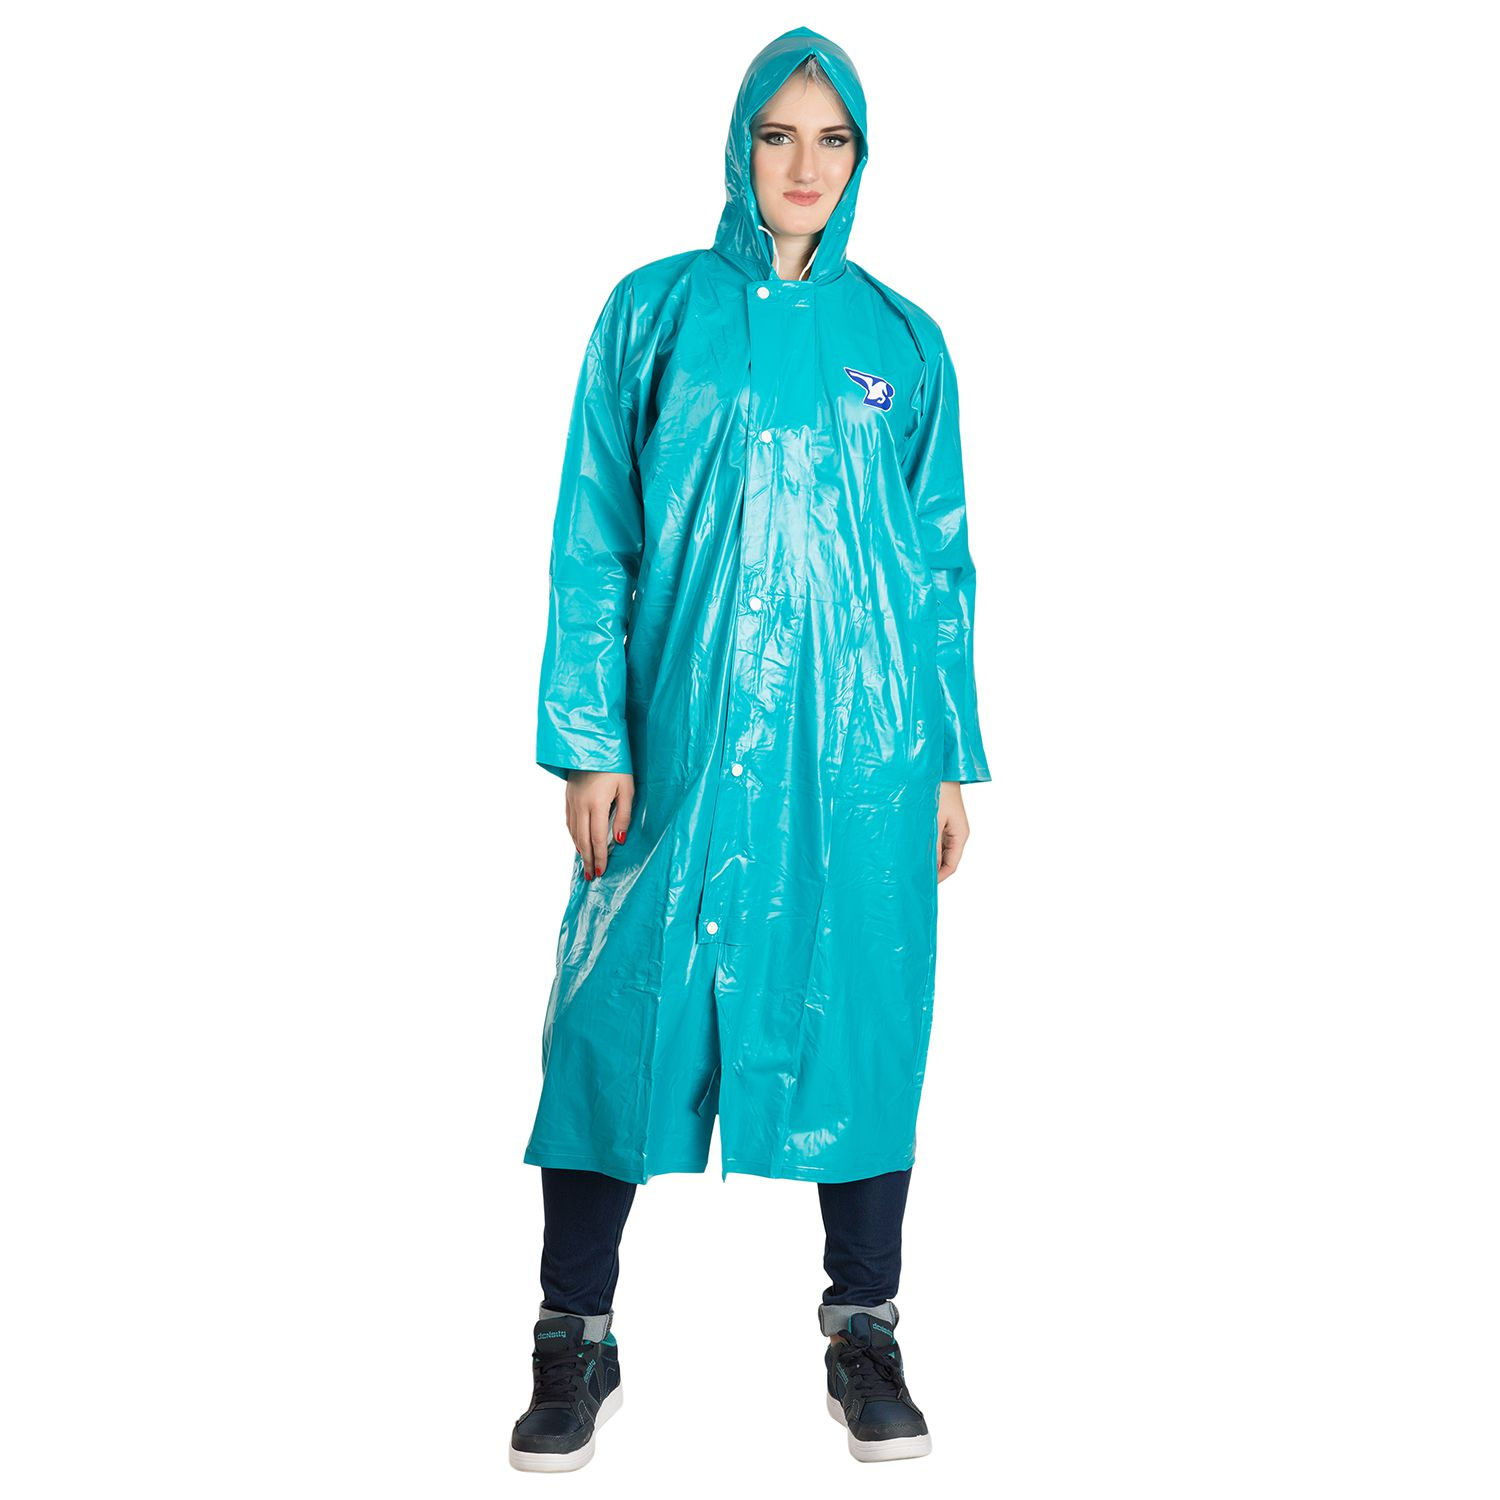 BURDY Waterproof Long Raincoat - Green